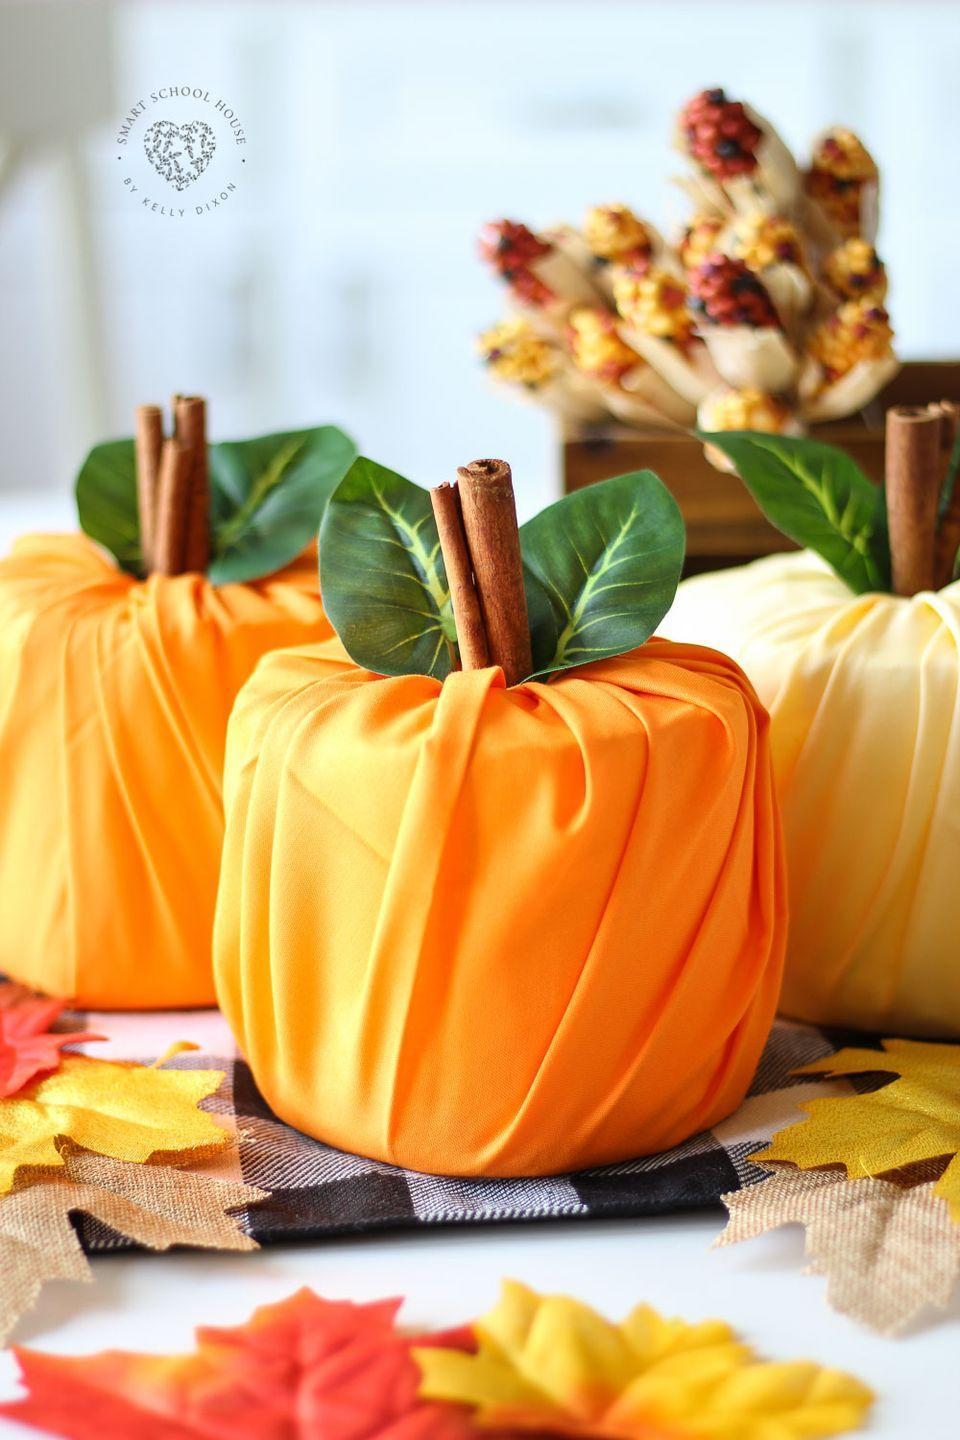 """<p>Who knew toilet paper could look so cute? We love this adorable (and affordable!) fall decorating idea for the bathroom.</p><p><strong>Get the tutorial at <a href=""""https://www.smartschoolhouse.com/diy-crafts/toilet-paper-pumpkins"""" rel=""""nofollow noopener"""" target=""""_blank"""" data-ylk=""""slk:Smart School House"""" class=""""link rapid-noclick-resp"""">Smart School House</a></strong> </p>"""